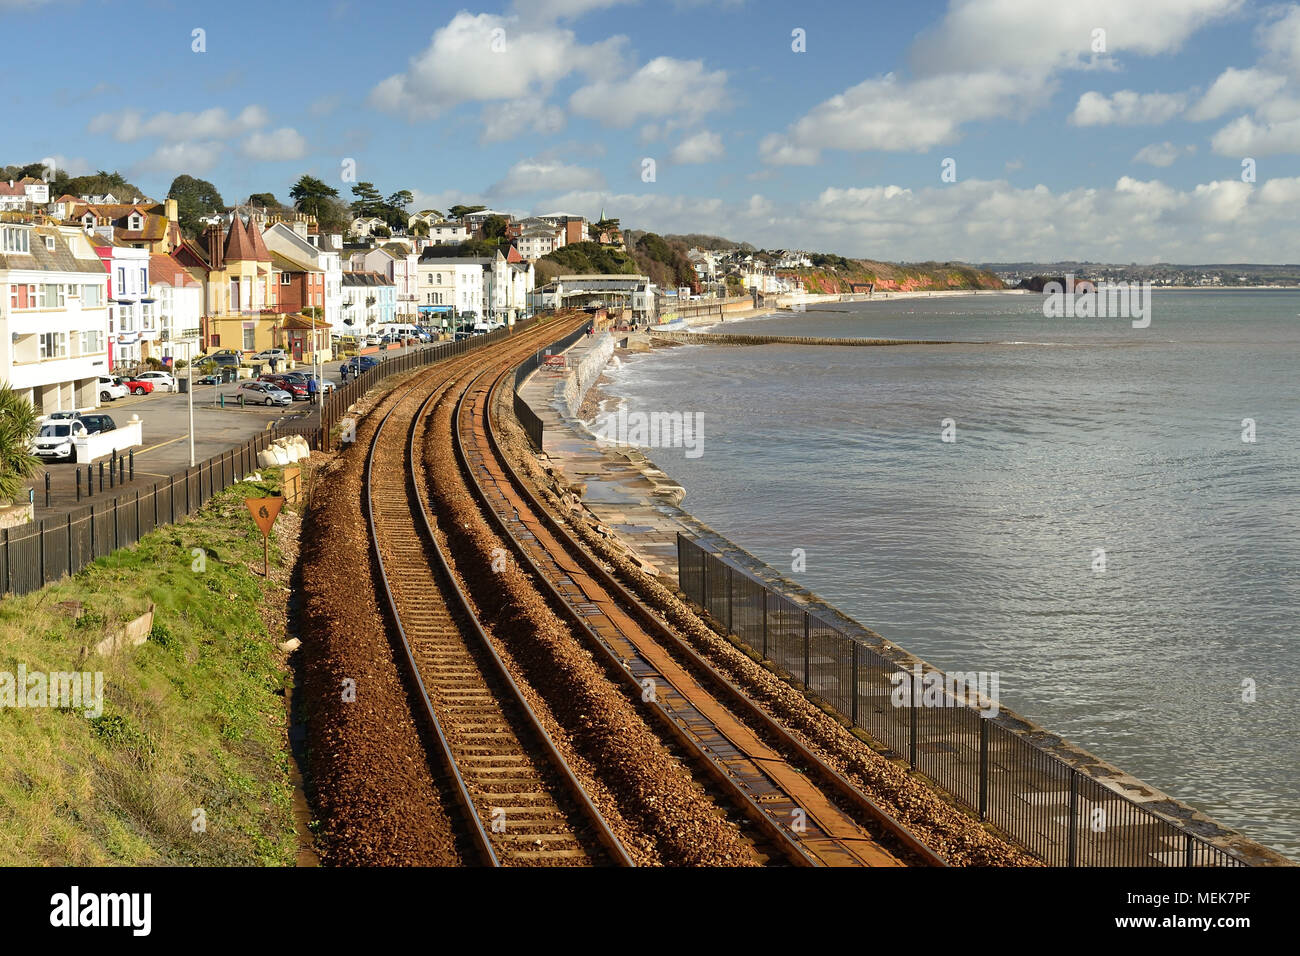 Missing fencing along the railway line at Dawlish following storm damage. - Stock Image